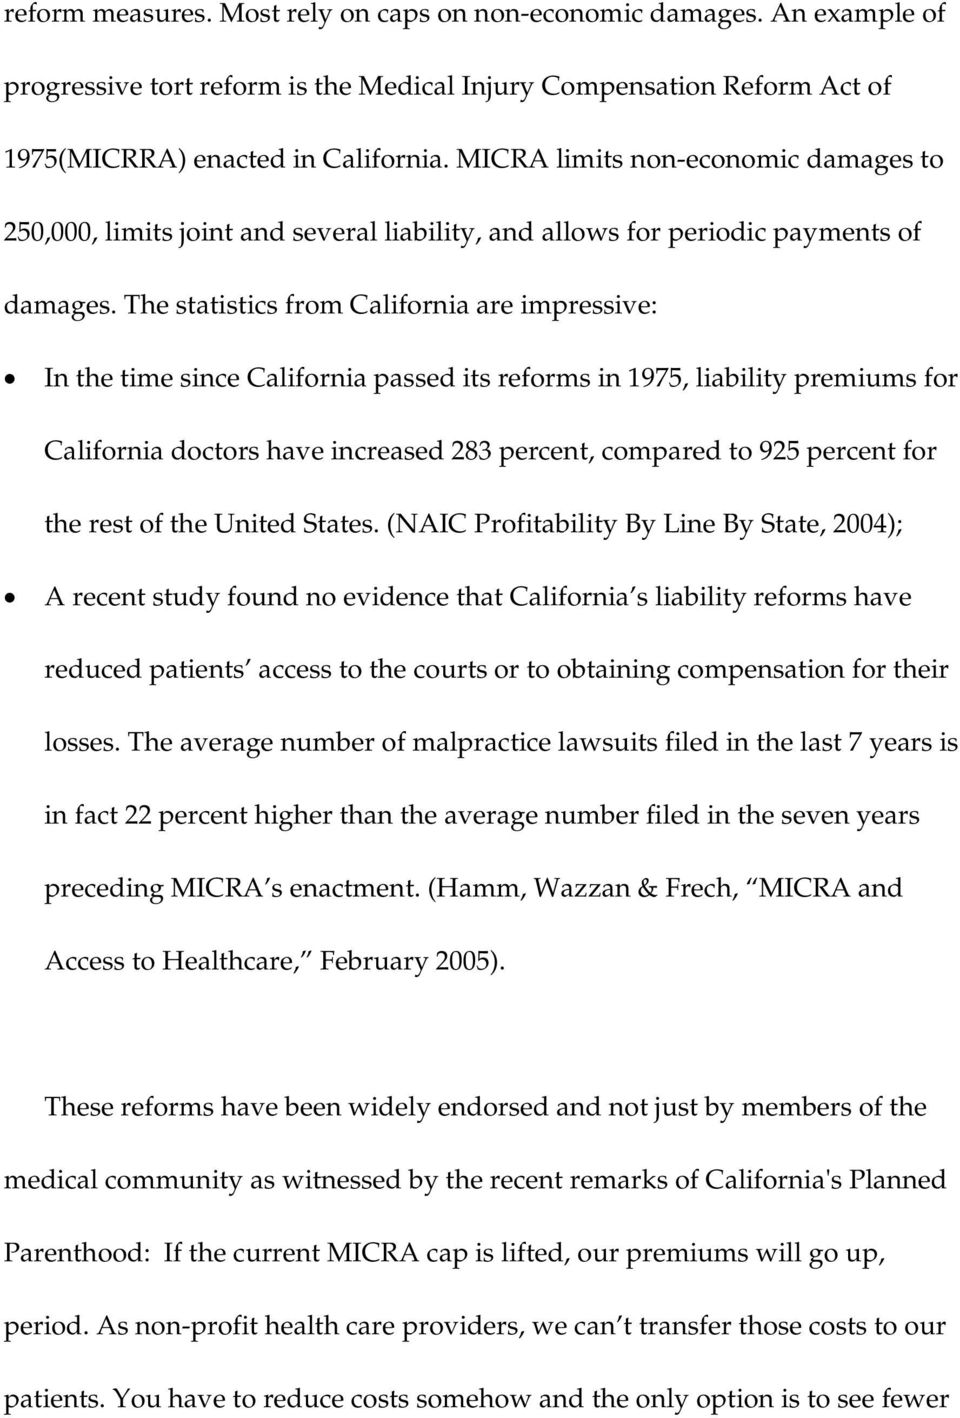 The statistics from California are impressive: In the time since California passed its reforms in 1975, liability premiums for California doctors have increased 283 percent, compared to 925 percent